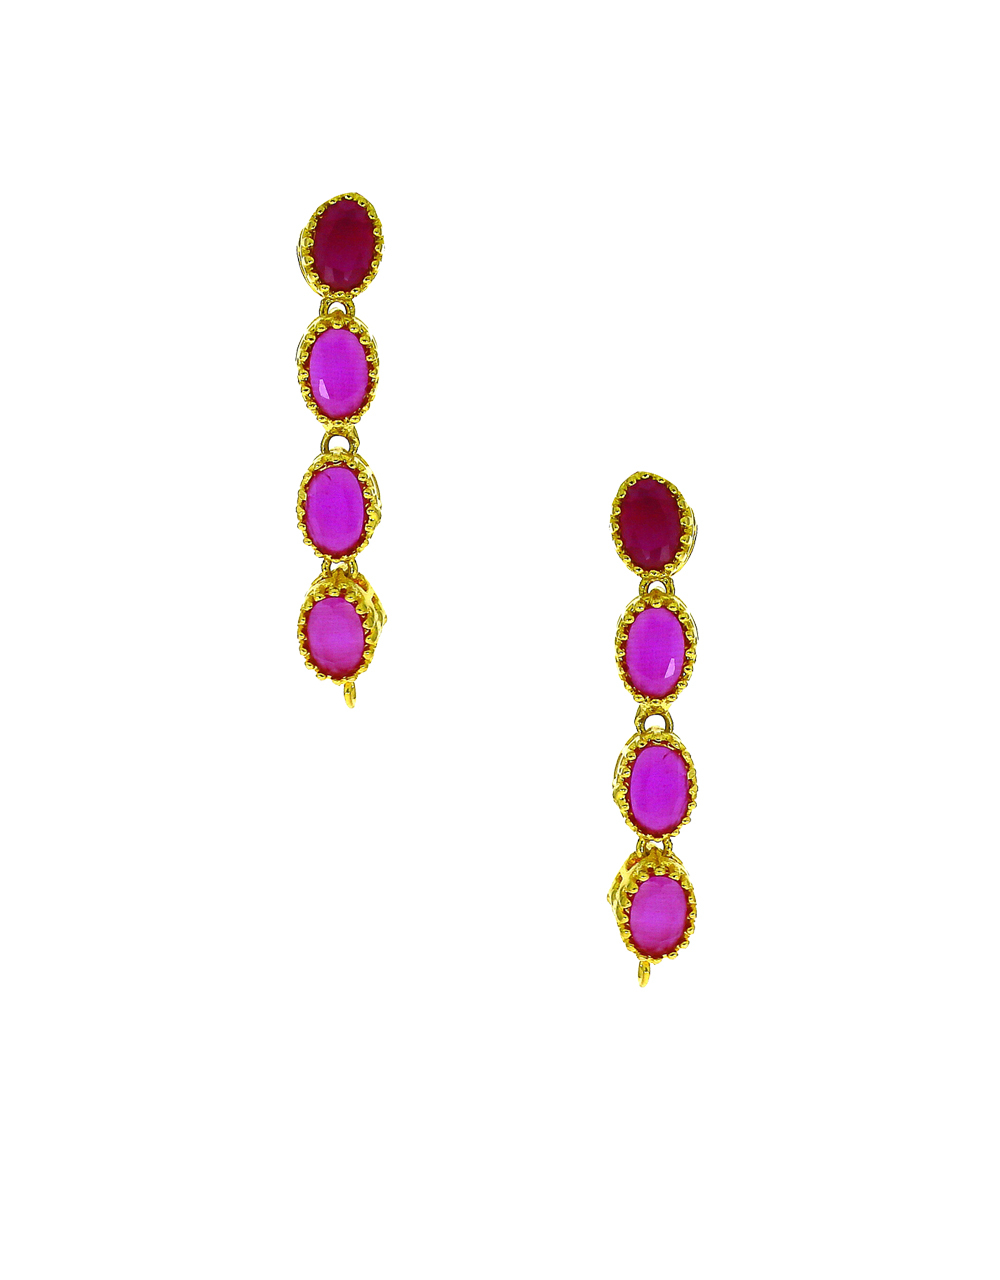 Beautiful Ruby Stones Studded Necklace With Earrings Set.